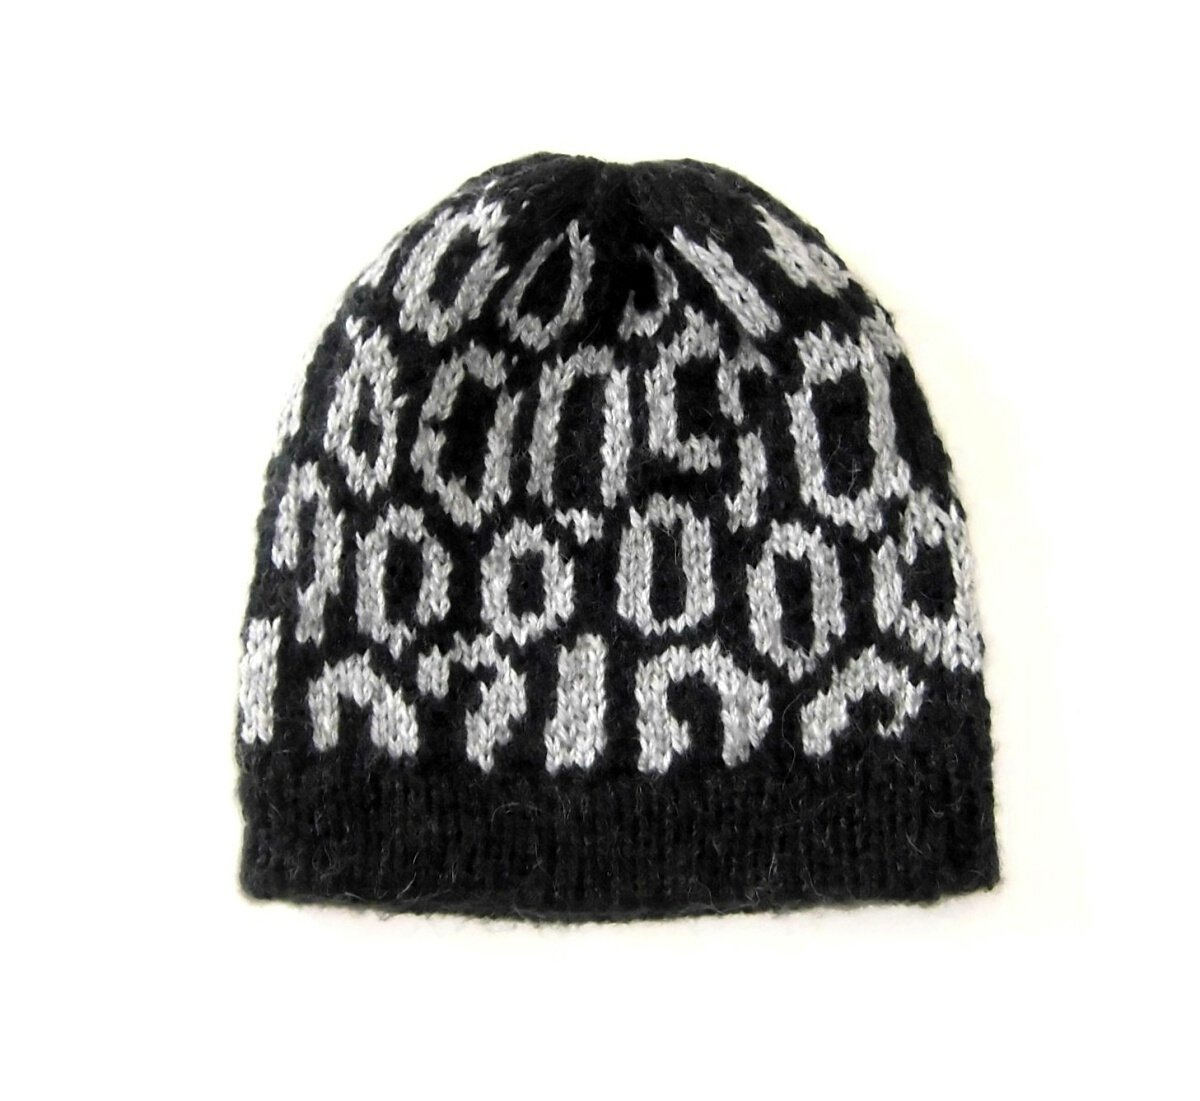 Unisex Beanie, hat made of 100% Peruvian Alpacawool. Black and white Designs. One size